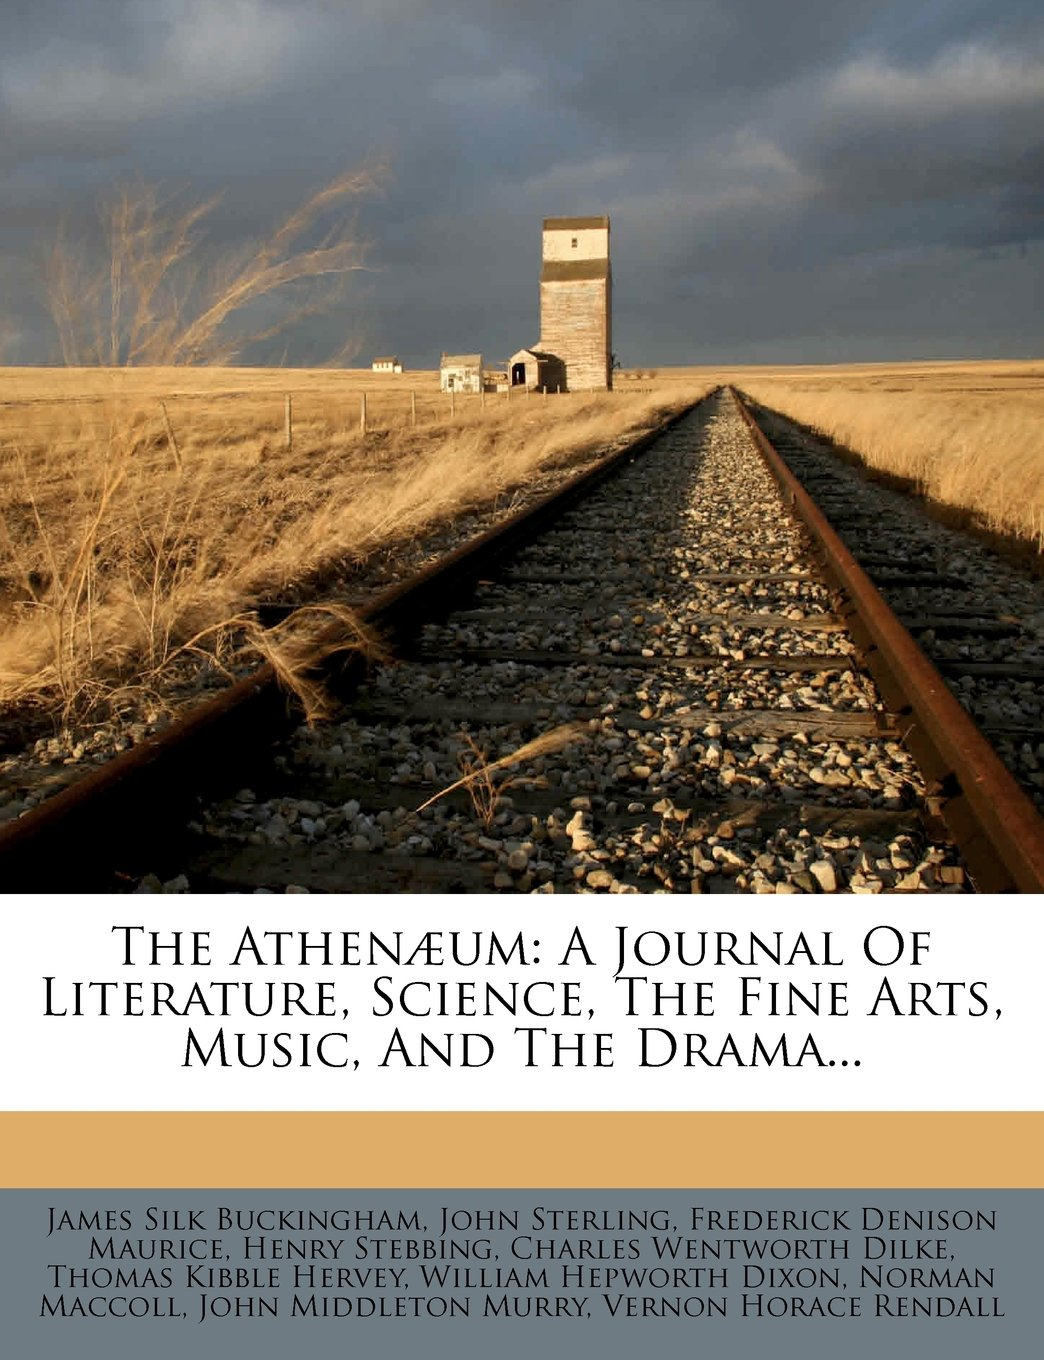 Download The Athenæum: A Journal Of Literature, Science, The Fine Arts, Music, And The Drama... pdf epub